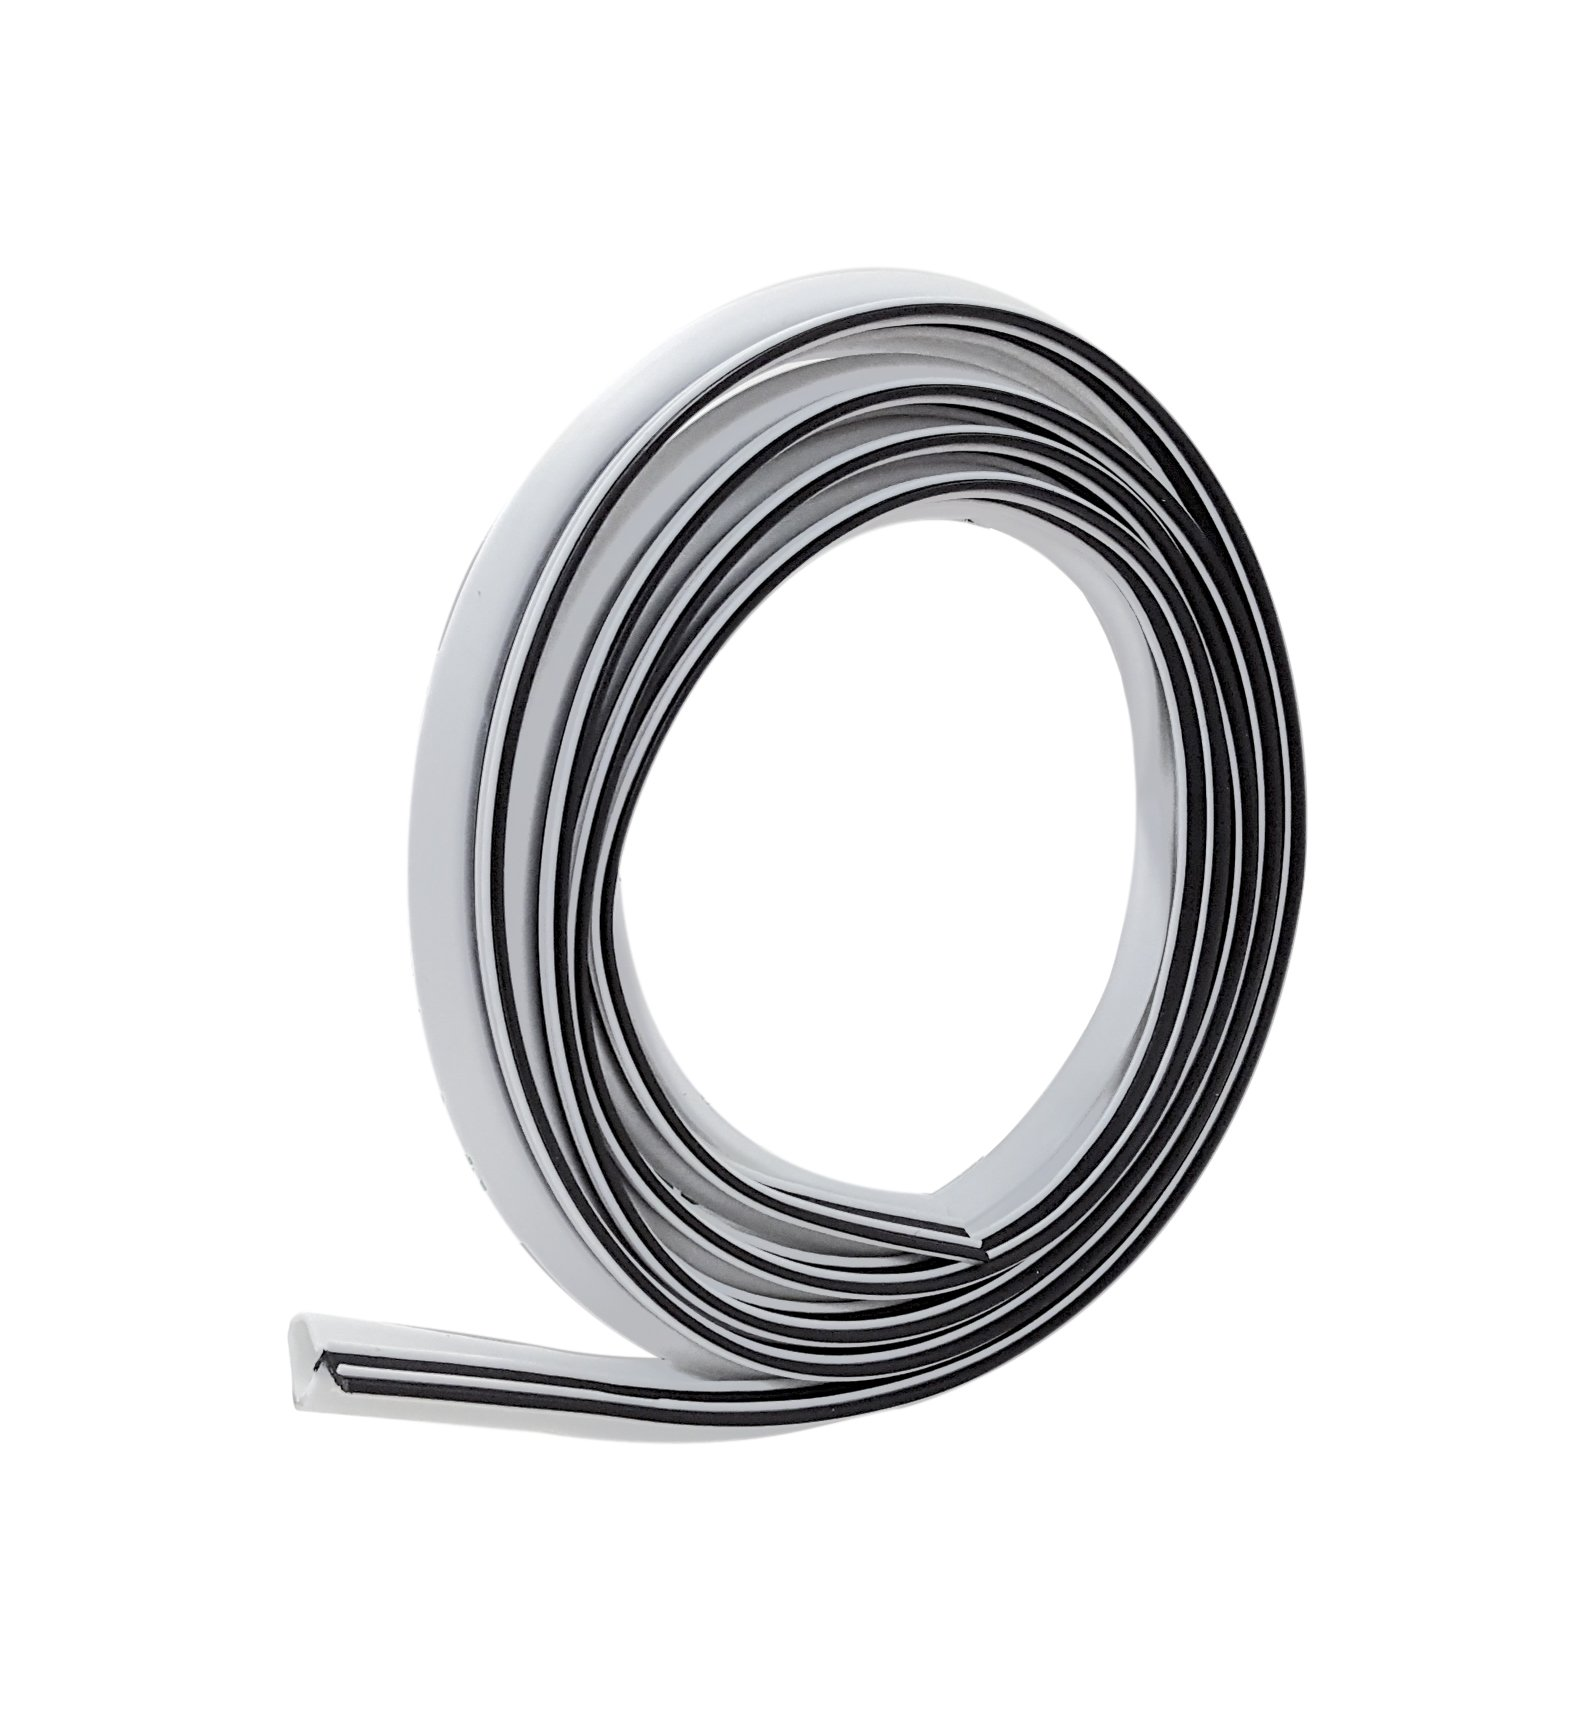 Frost King ES184W Weatherseal Replacement, 3/4In Wide x 5/8In Thick x 84In Long, White